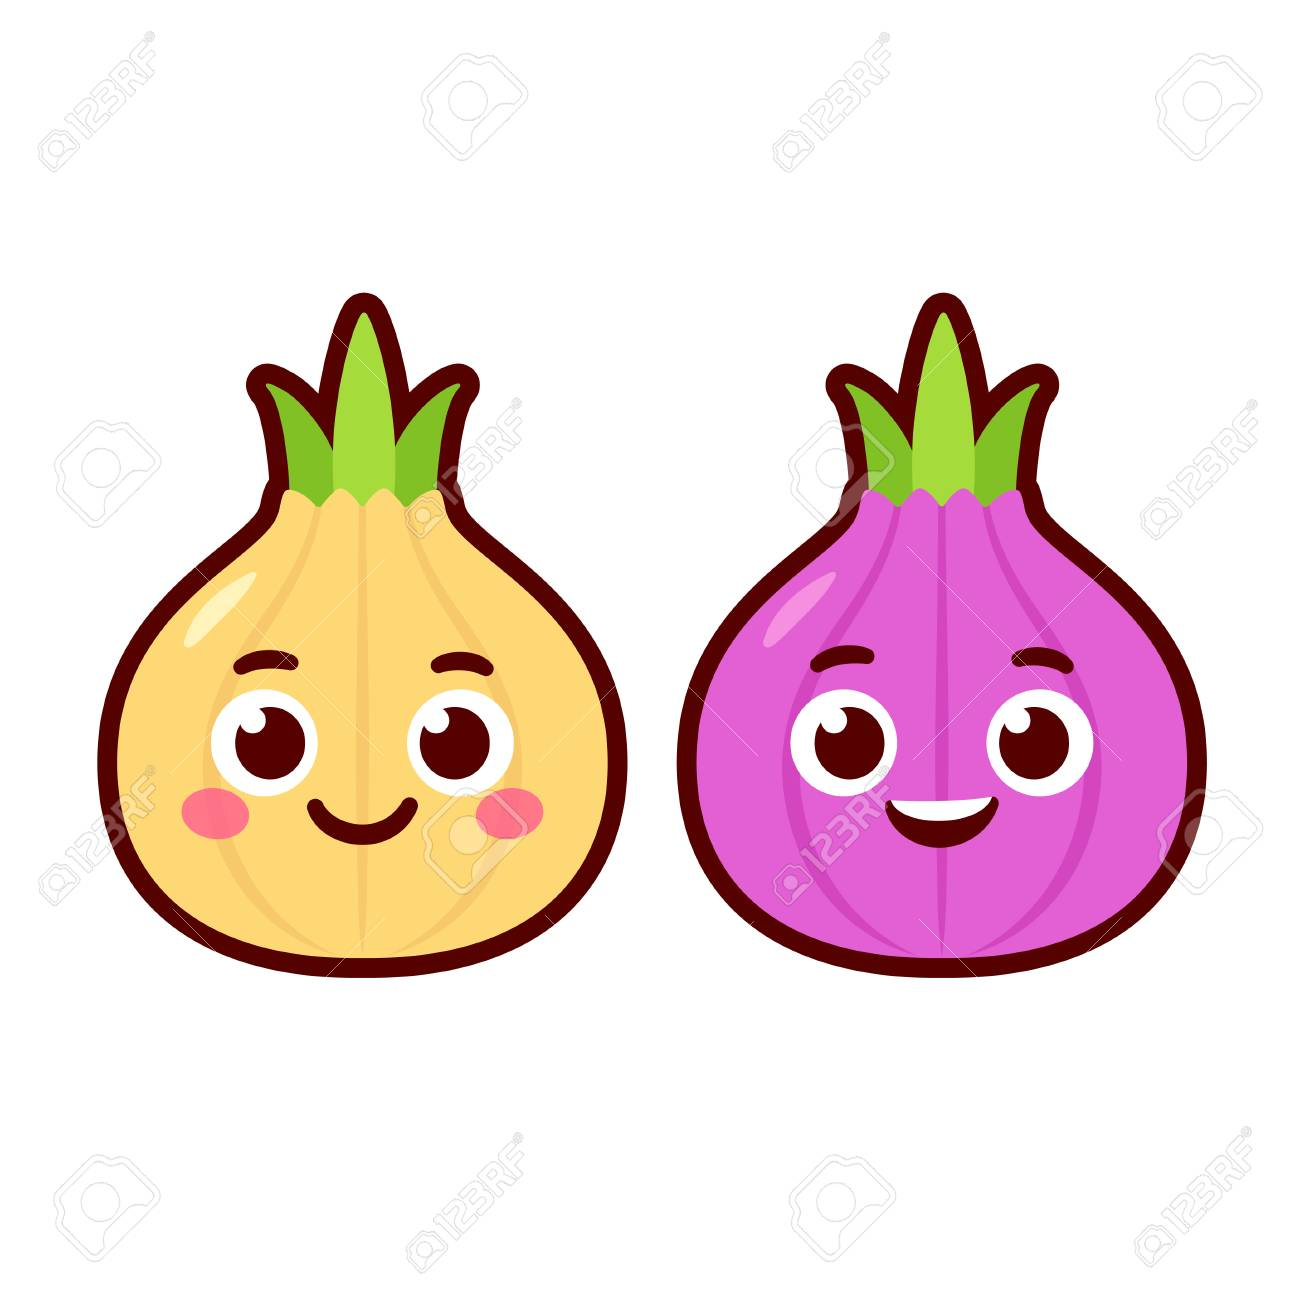 Cute cartoon onion characters, red and yellow onions. Vector...